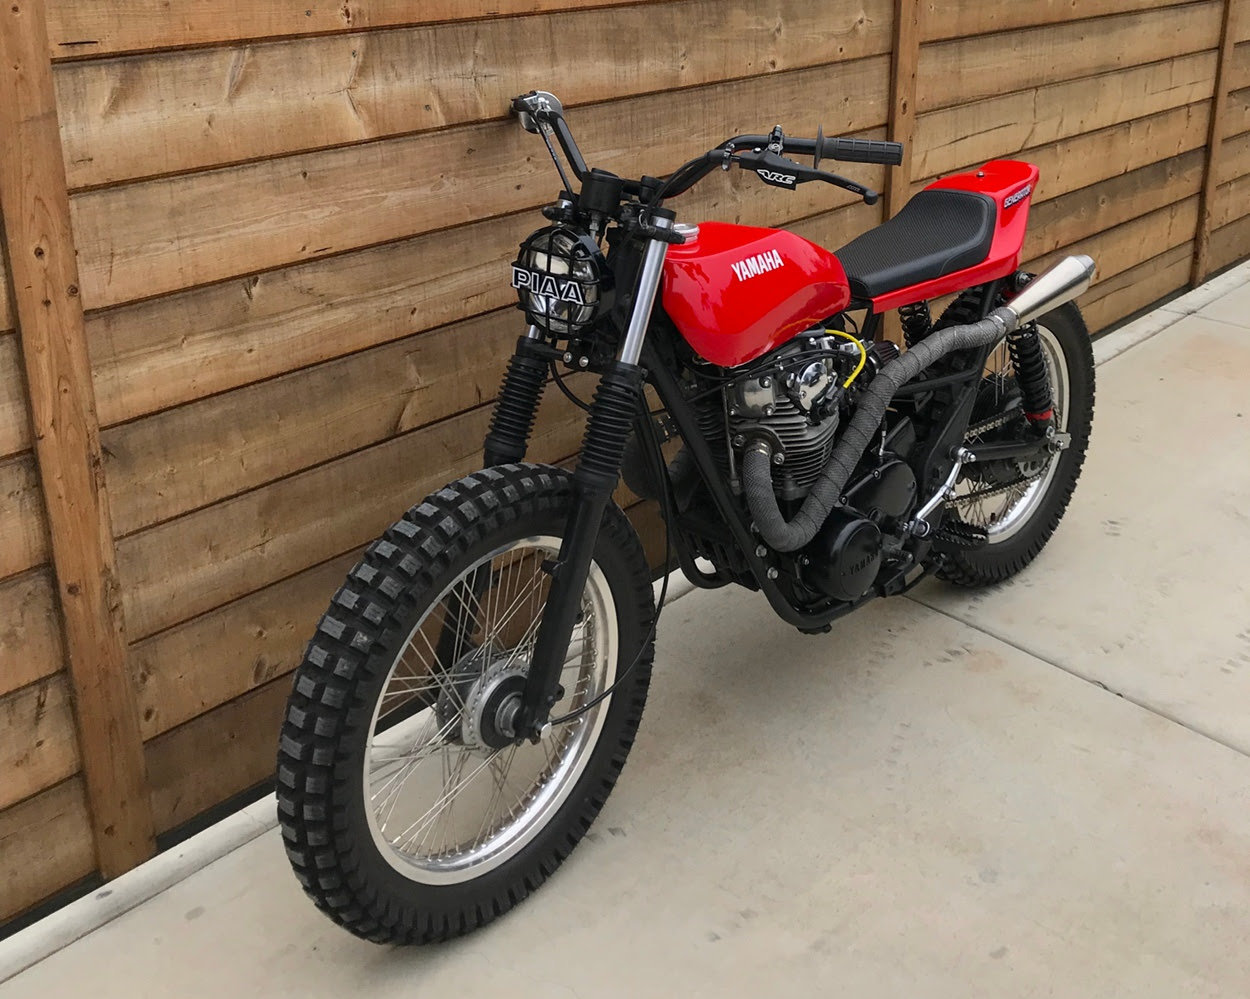 Yamaha Xs650 Motorcycles For Sale In San Francisco California